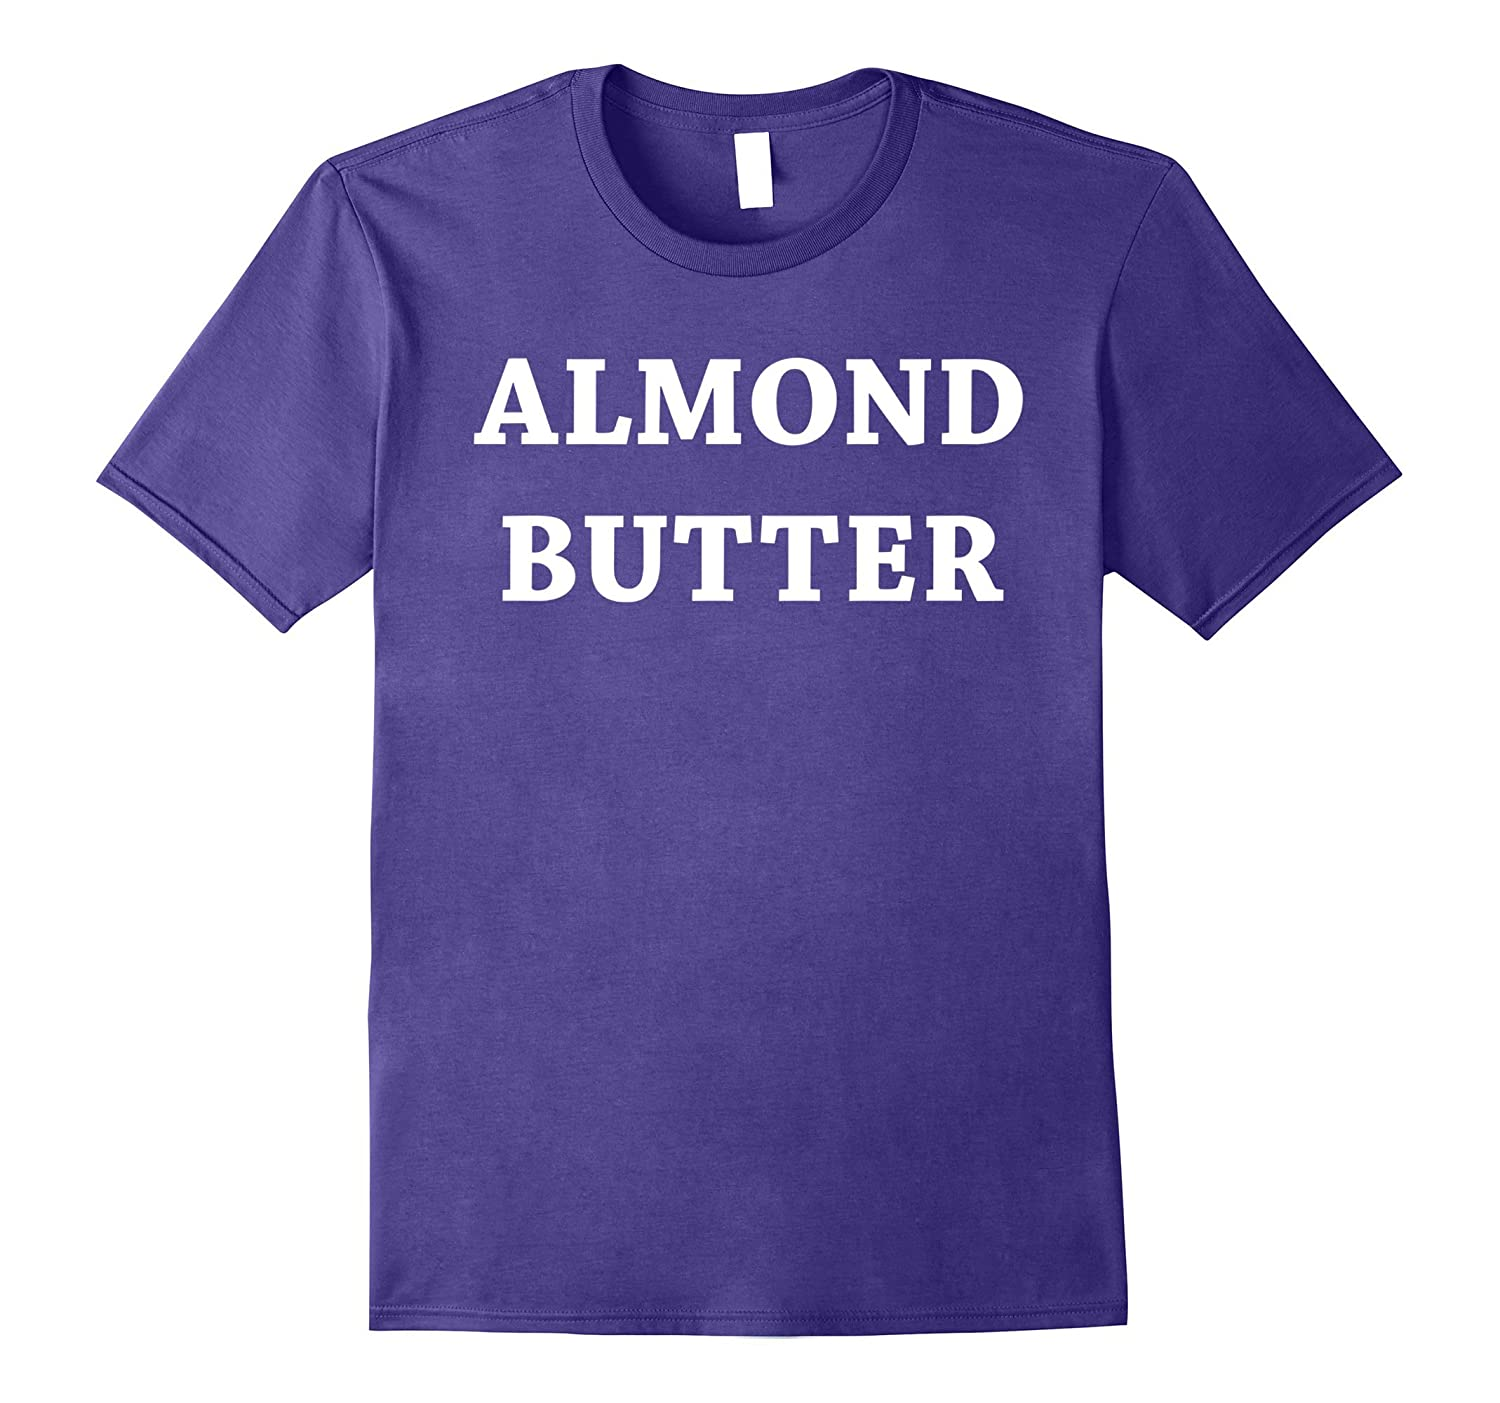 Almond Butter T-shirt Eating well for Almonds lovers-T-Shirt